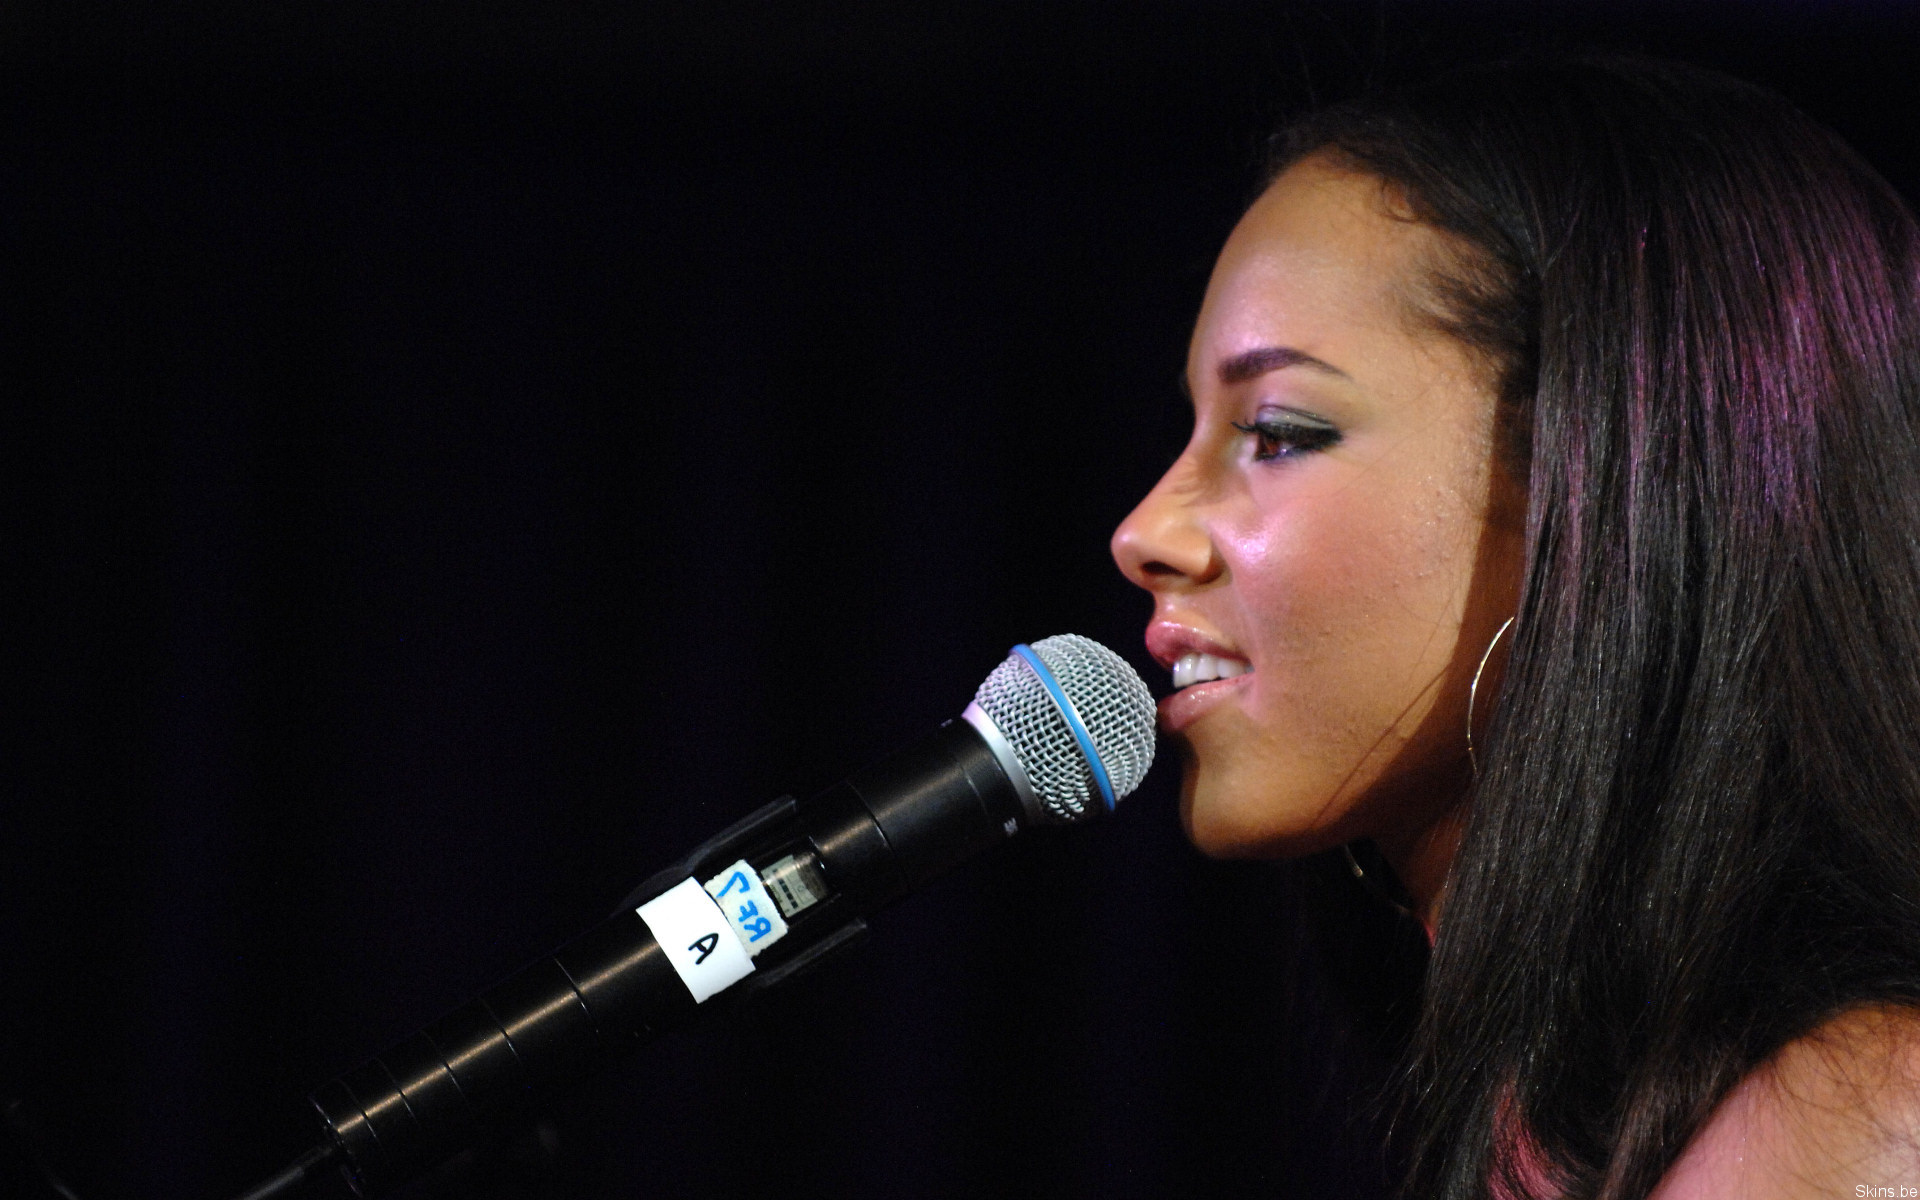 Alicia Augello Cook known professionally as Alicia Keys, is an American singer-songwriter and